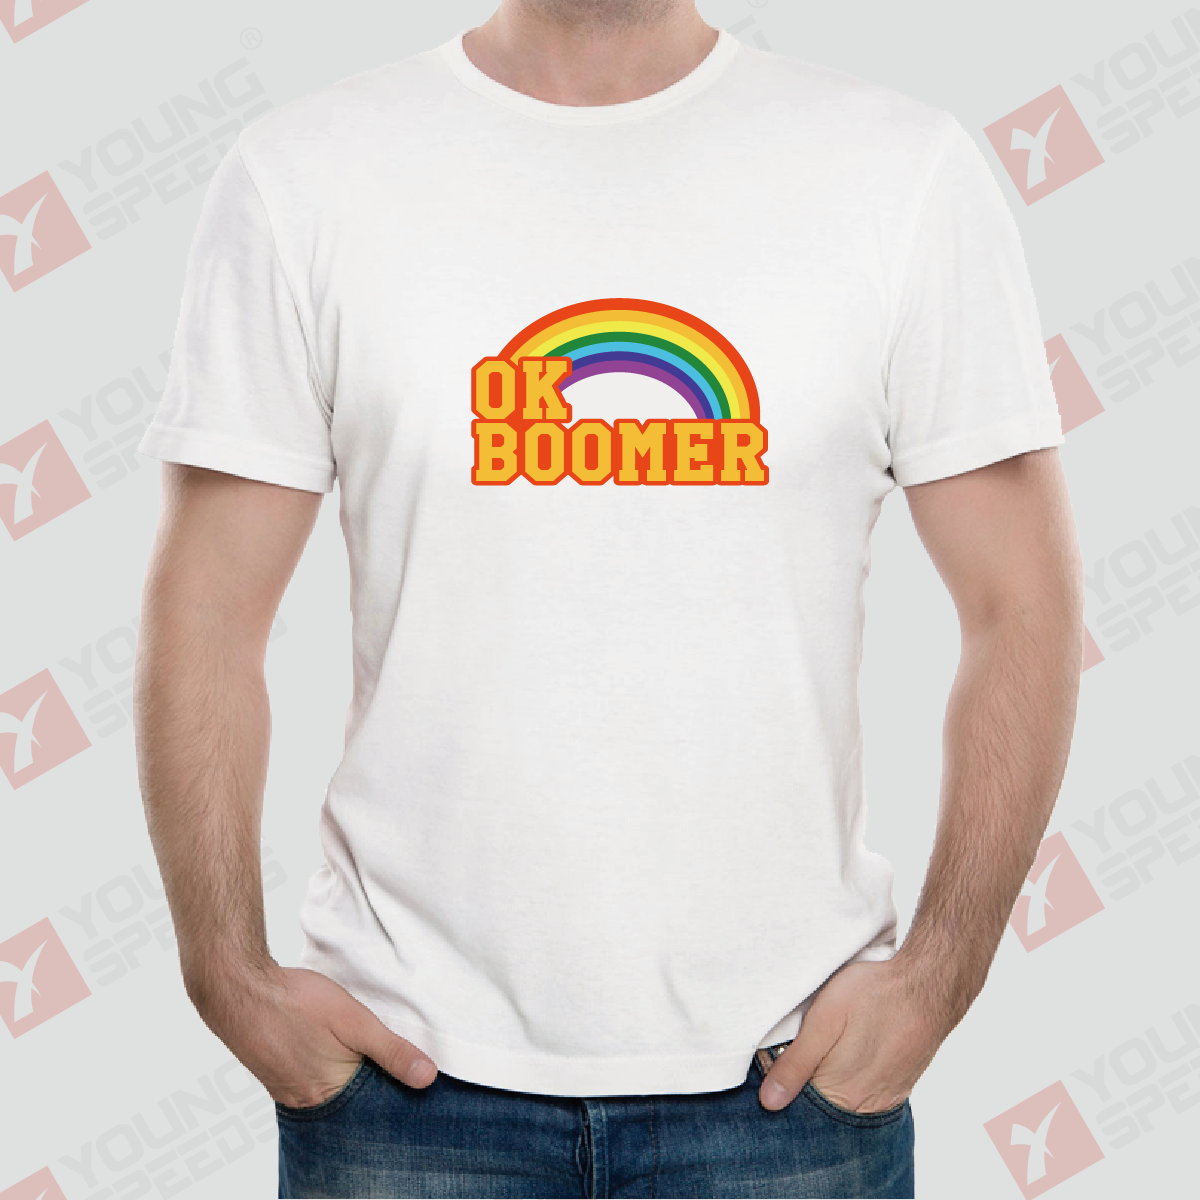 Original Rainbow OK BOOMER Unisex T-Shirts Made in USA - YoungSpeeds